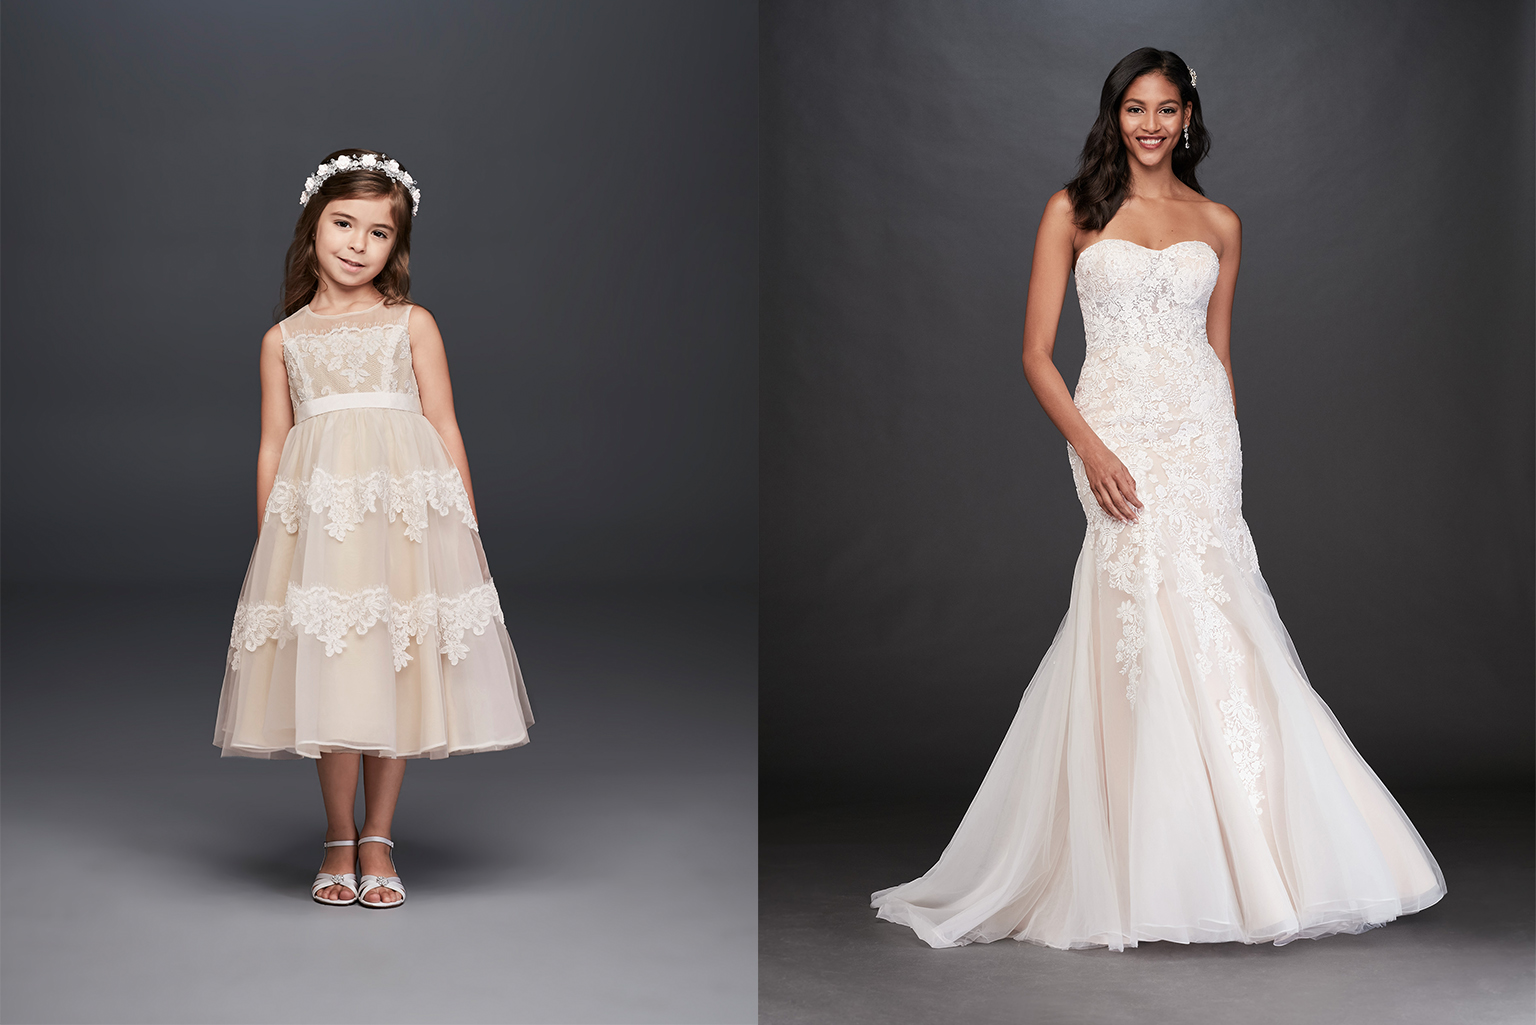 Champagne Hue Flower girl and bridal style